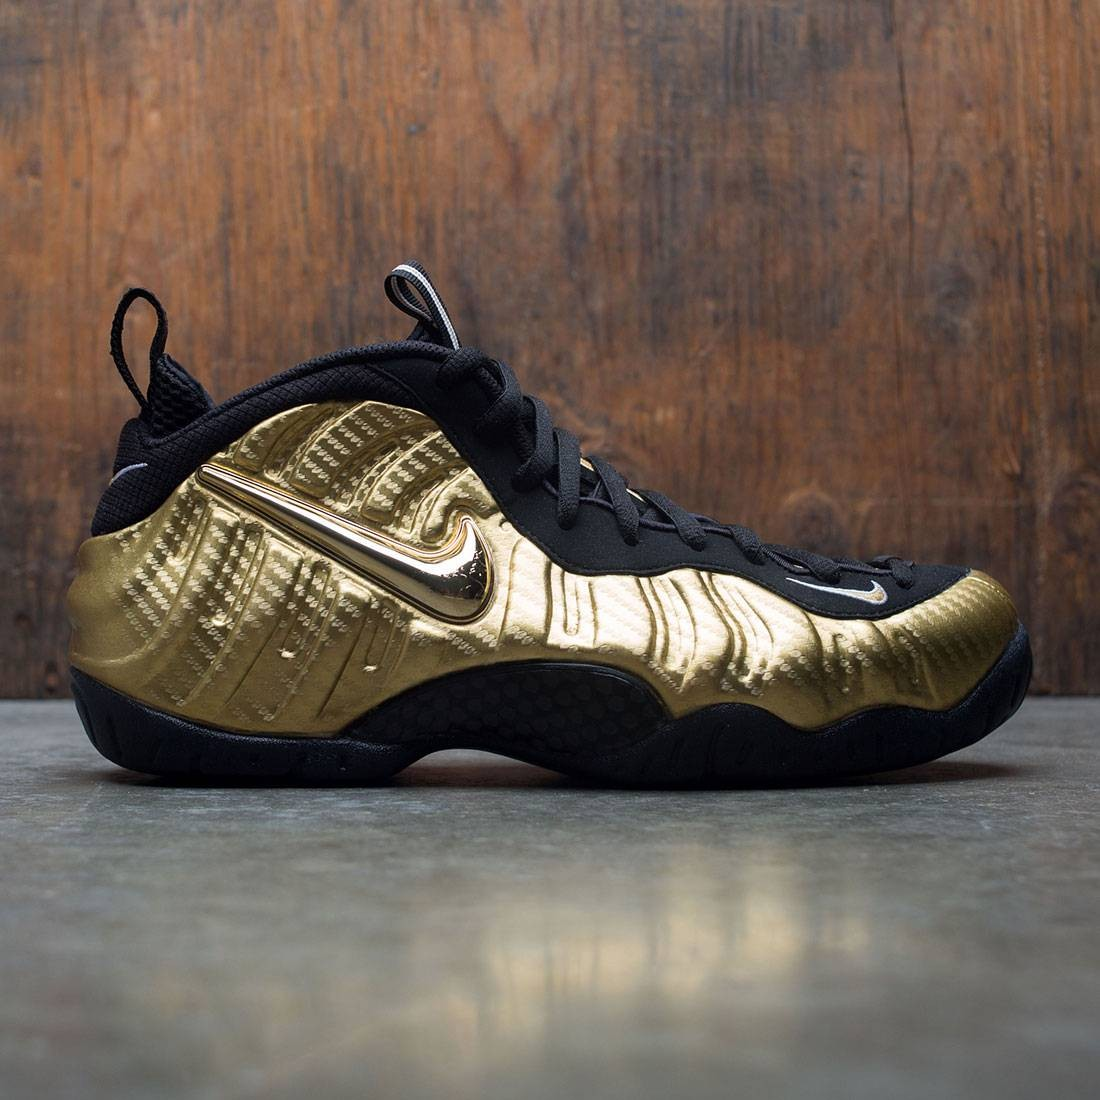 brand new e454a 47d5a nike men air foamposite pro yellow metallic gold black black white